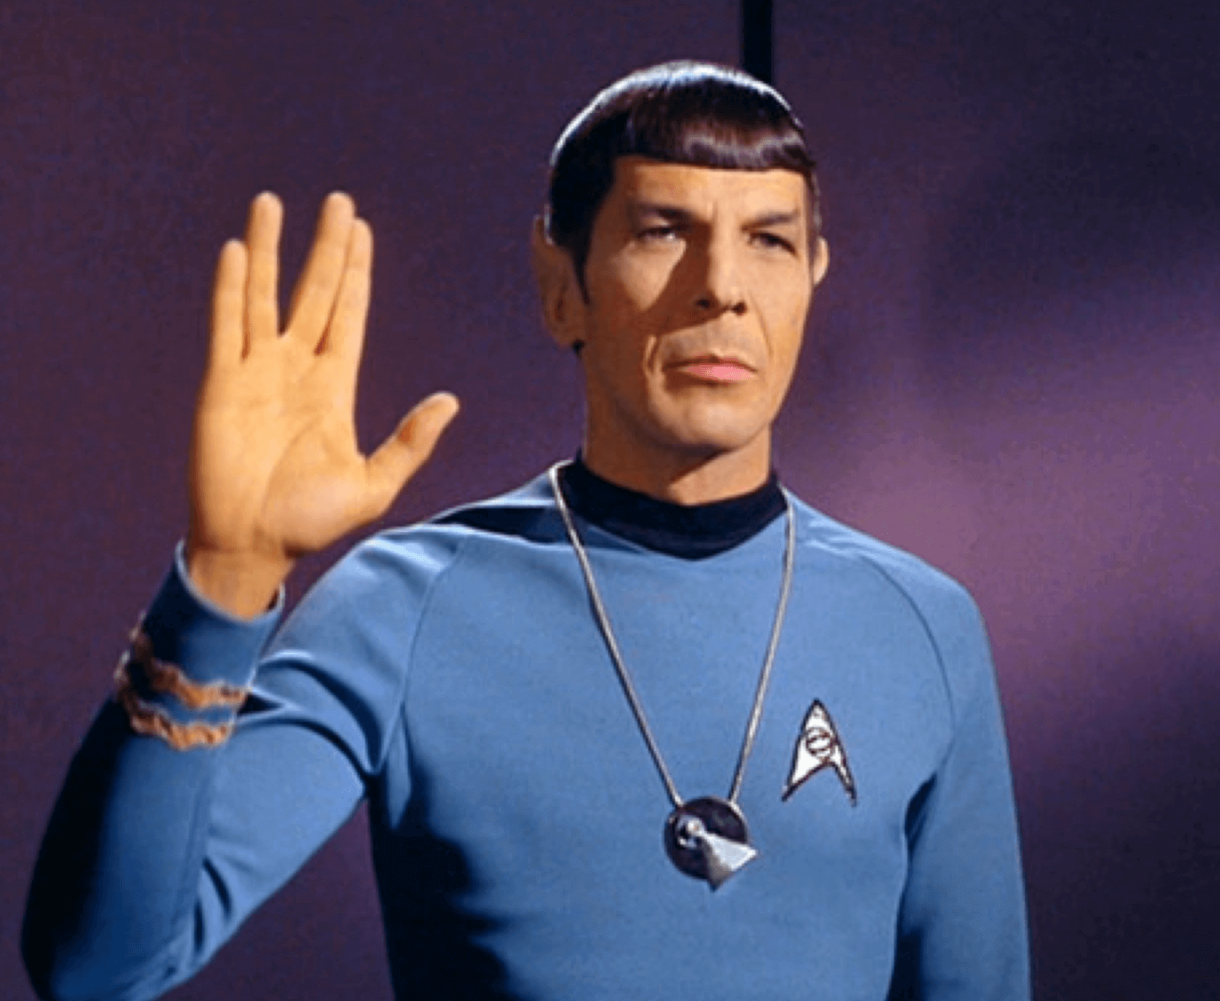 Spock from Star Trek in his blue uniform making the classic Vulcan hand sign